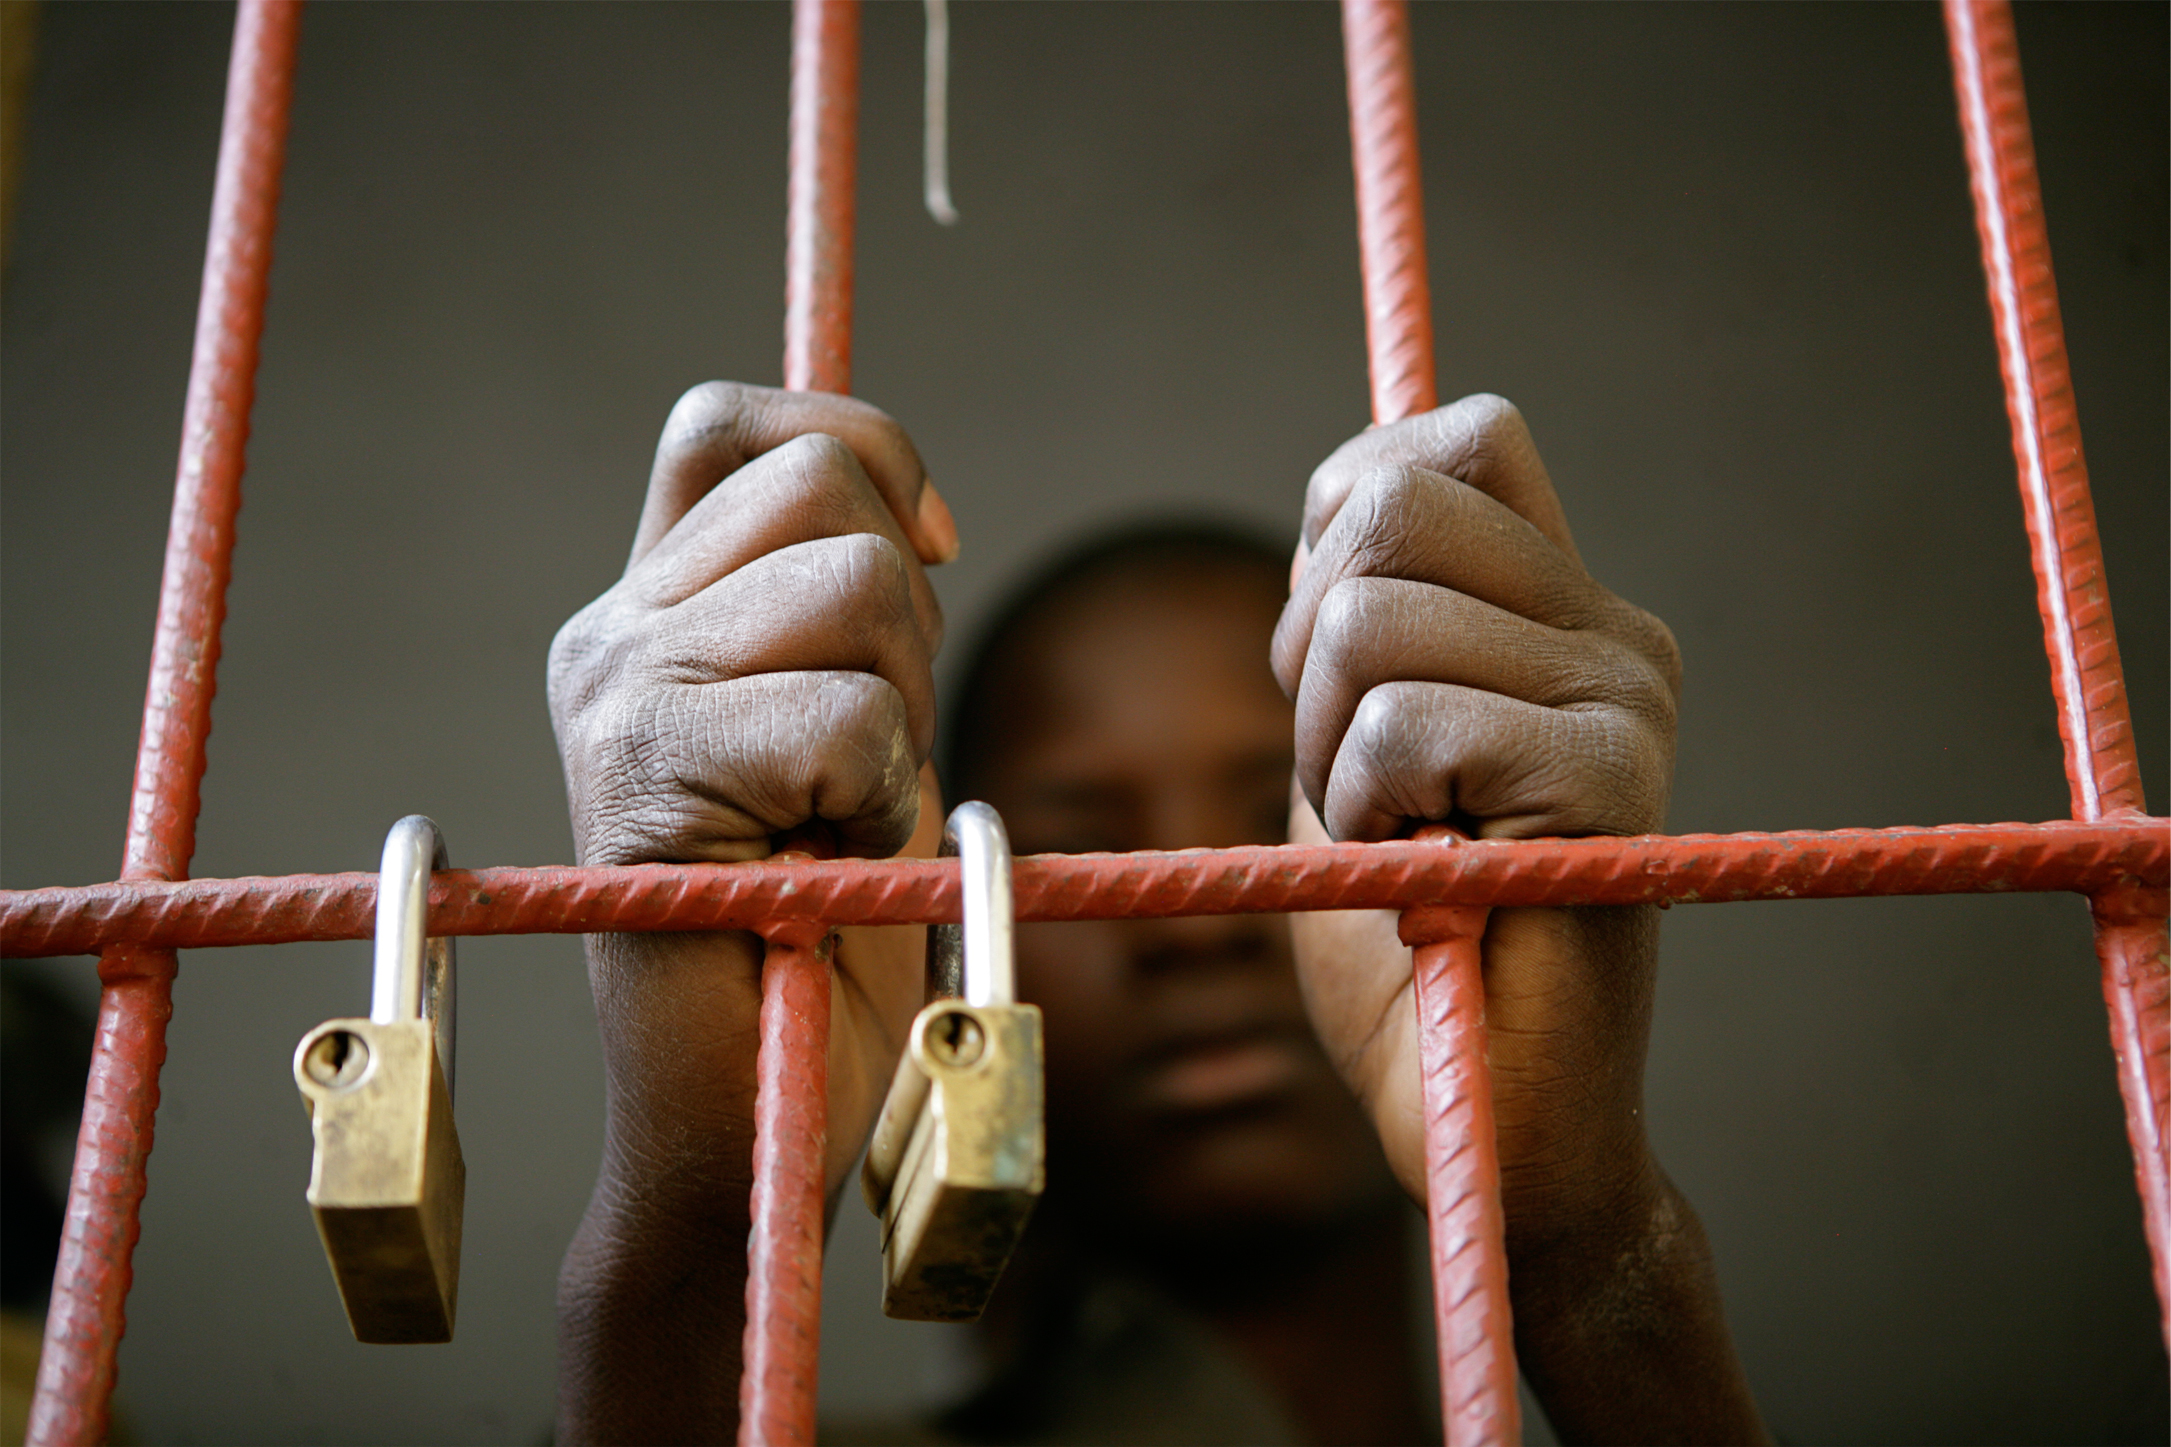 In 2009 in Mali, a 14-year-old boy grips the bars of his cell at the juvenile prison in the town of Mopti, Mopti Region. UNICEF supports a juvenile justice programme and local NGOs that provide education and family reunification services in Mopti.